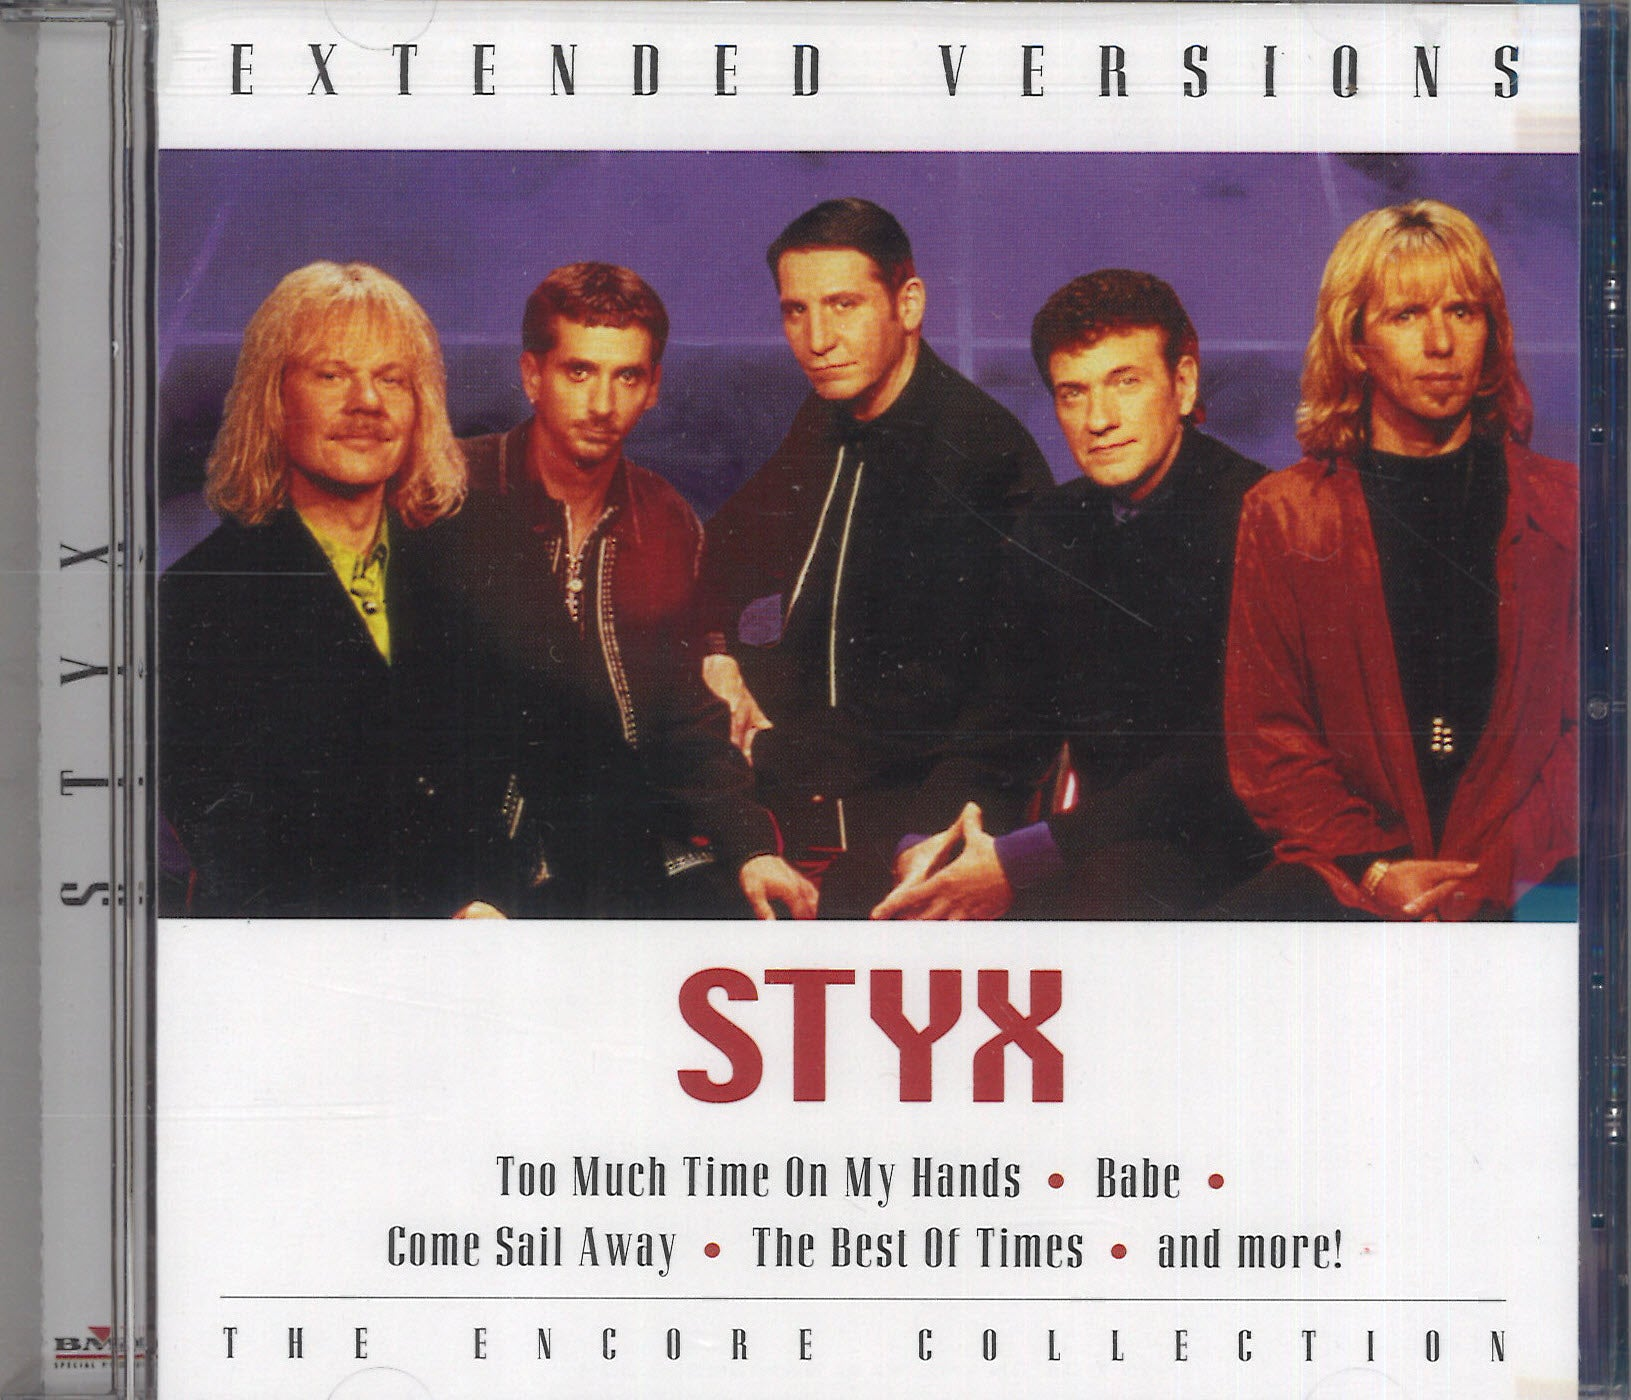 Styx Extended Versions